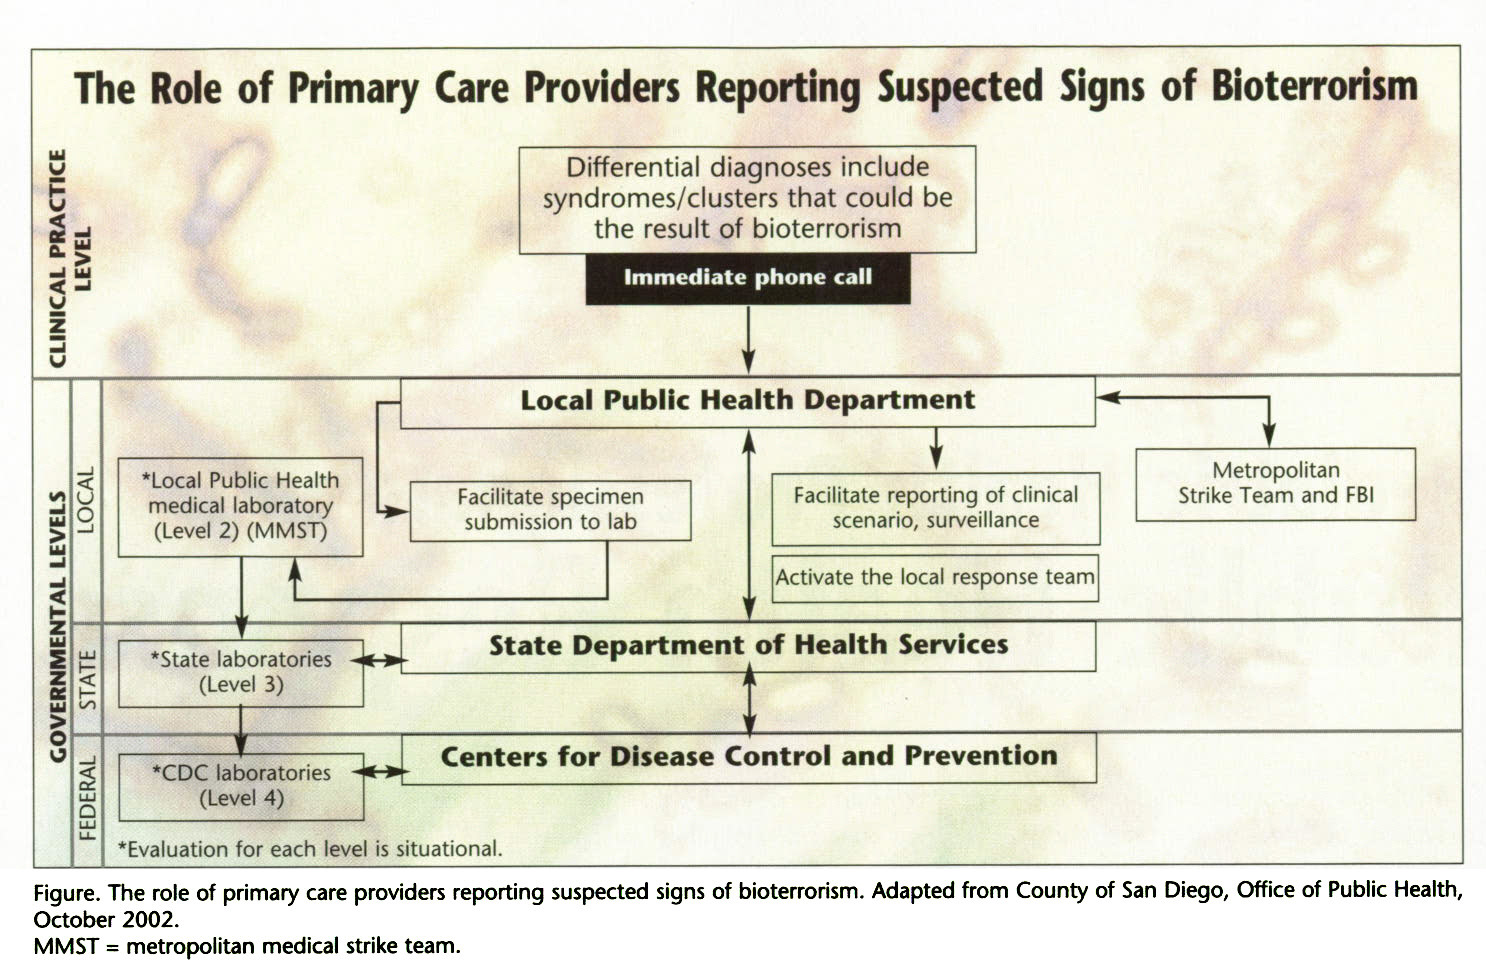 Figure. The role of primary care providers reporting suspected signs of bioterrorism. Adapted from County of San Diego, Office of Public Health, October 2002.